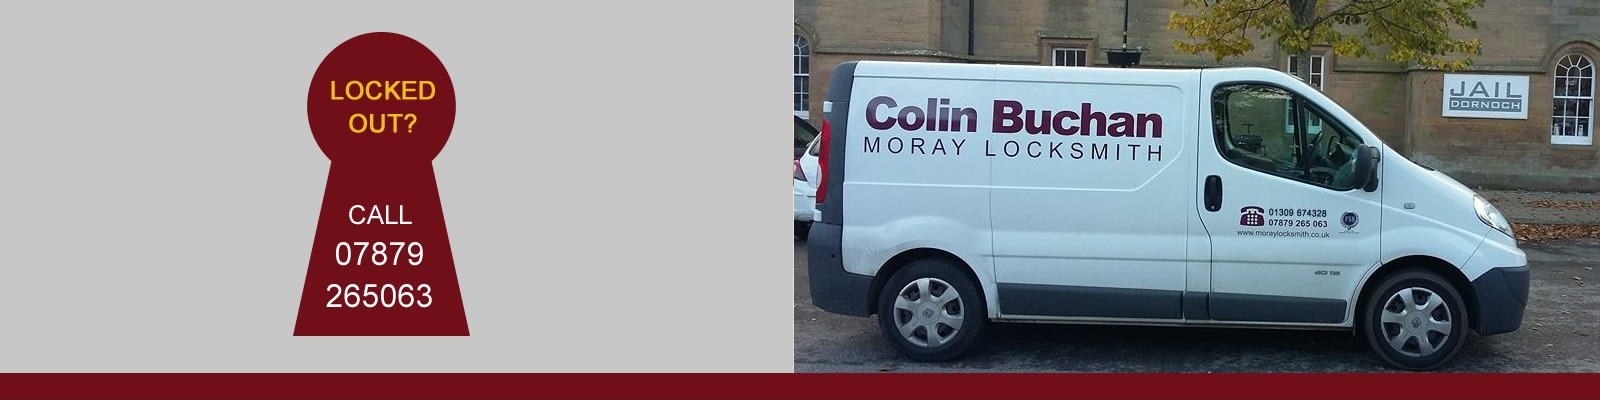 Moray Locksmith